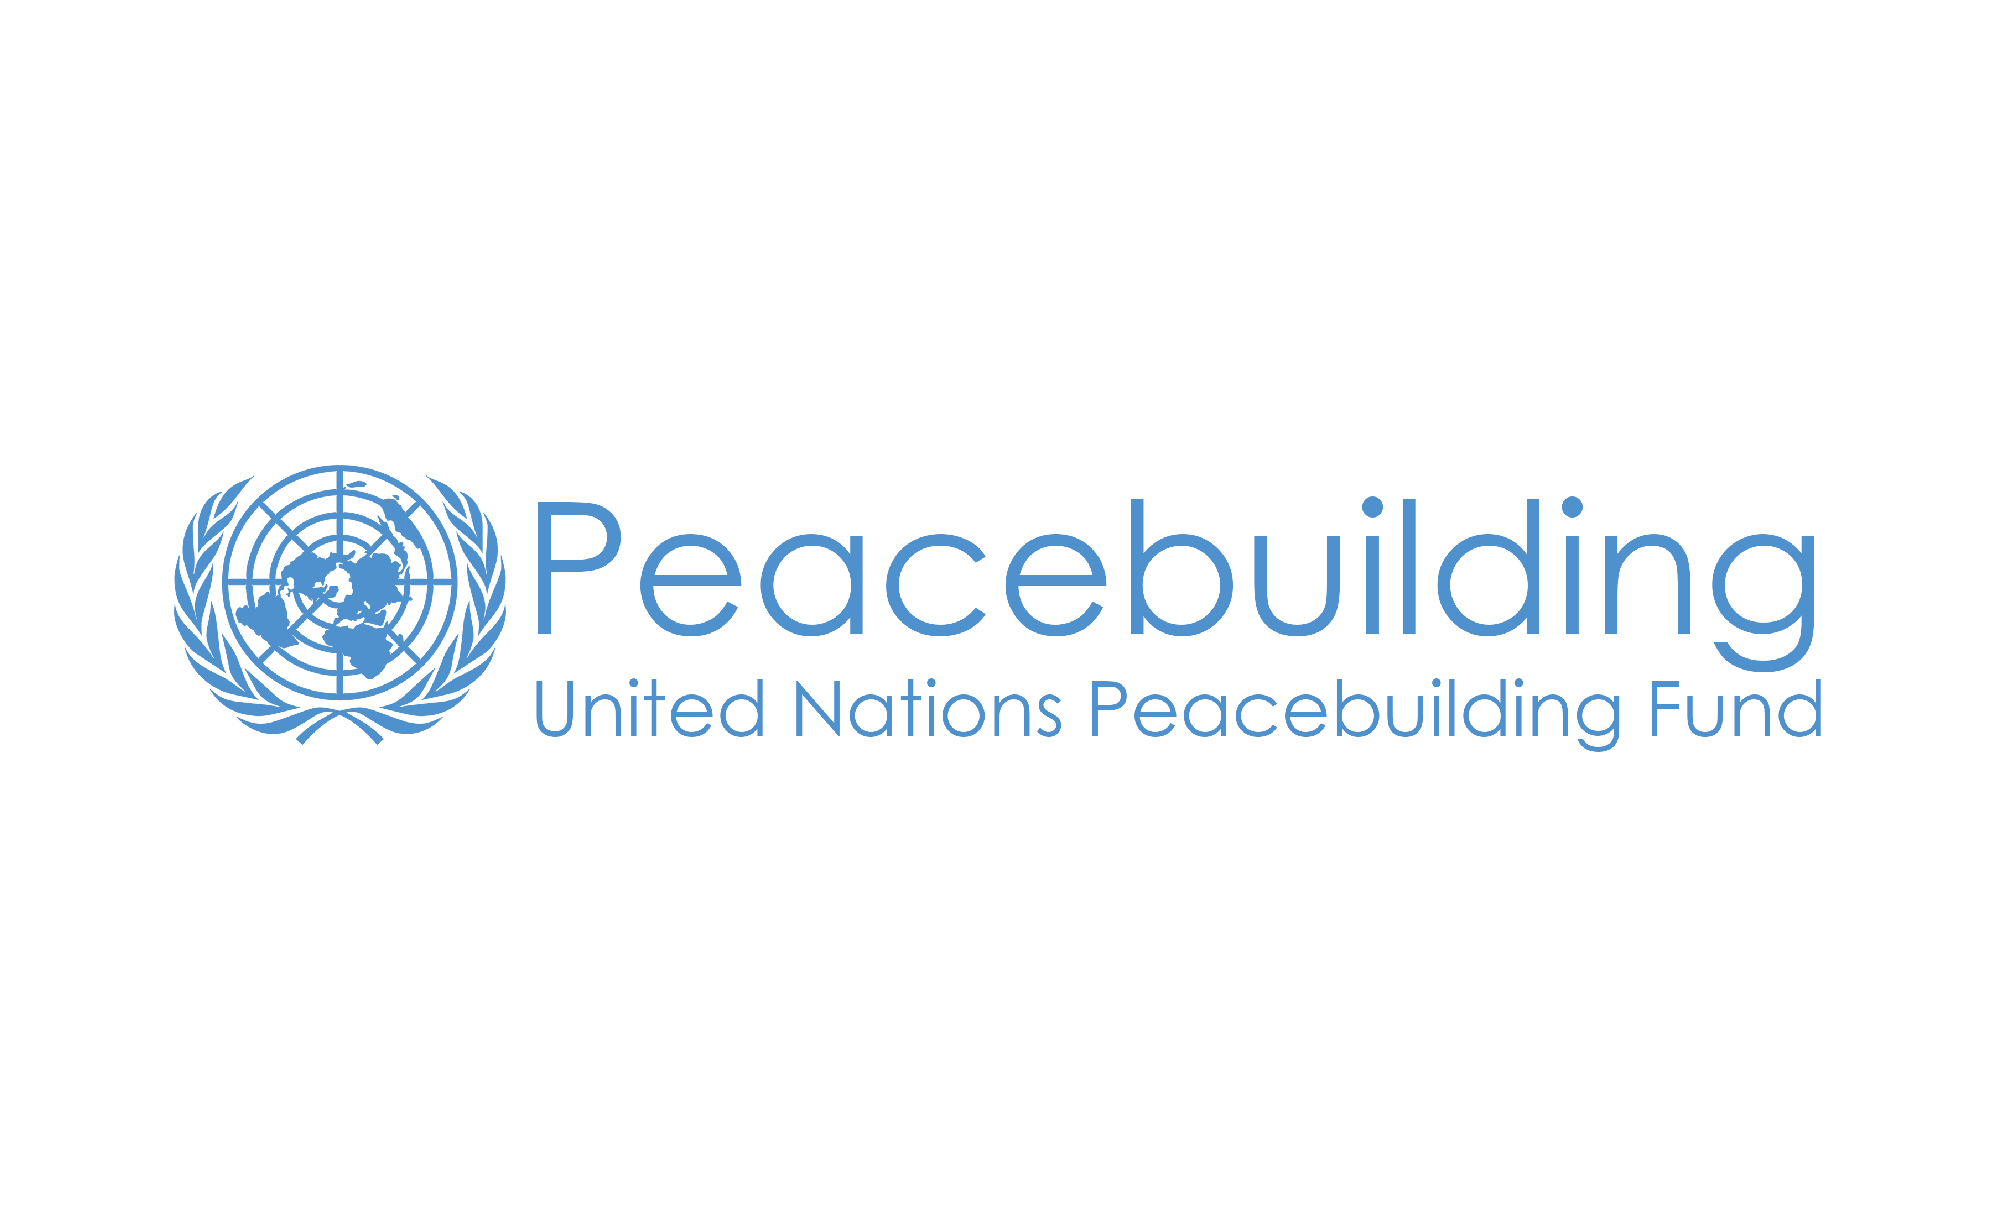 United Nations Peacebuilding Fund in the Kyrgyz Republic